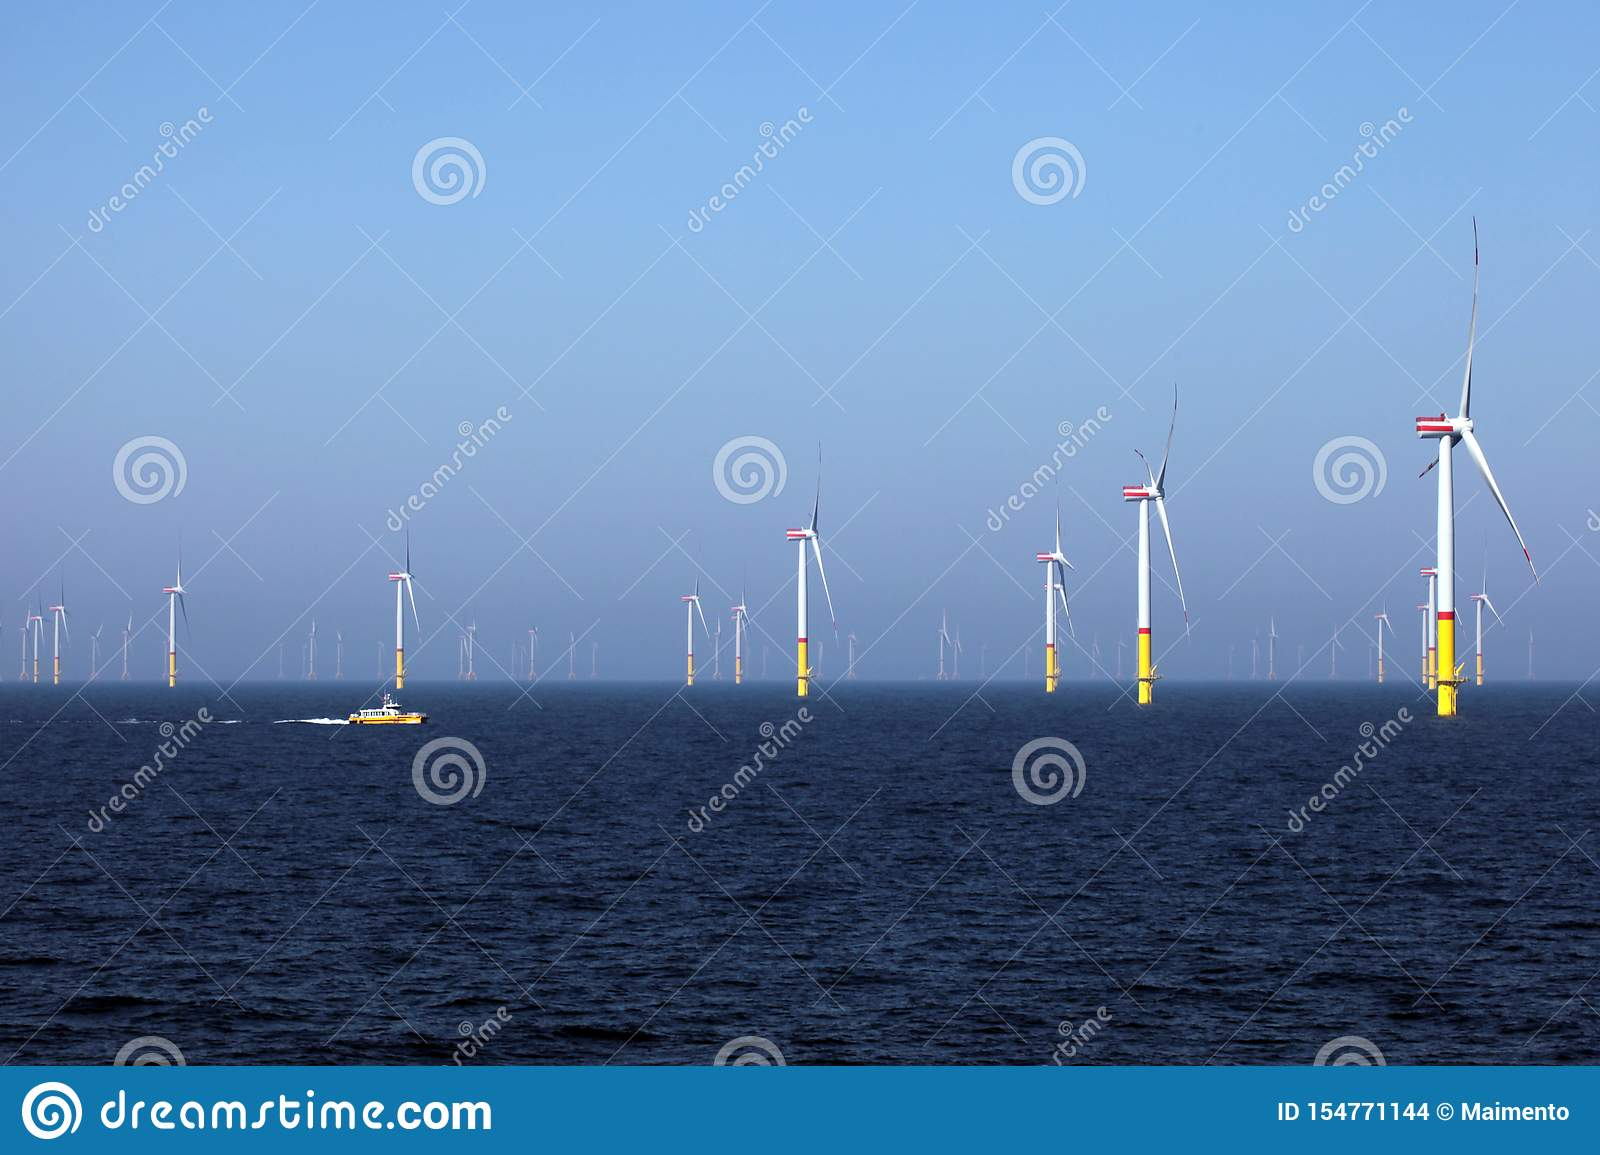 Wind farm offshore, green electricity